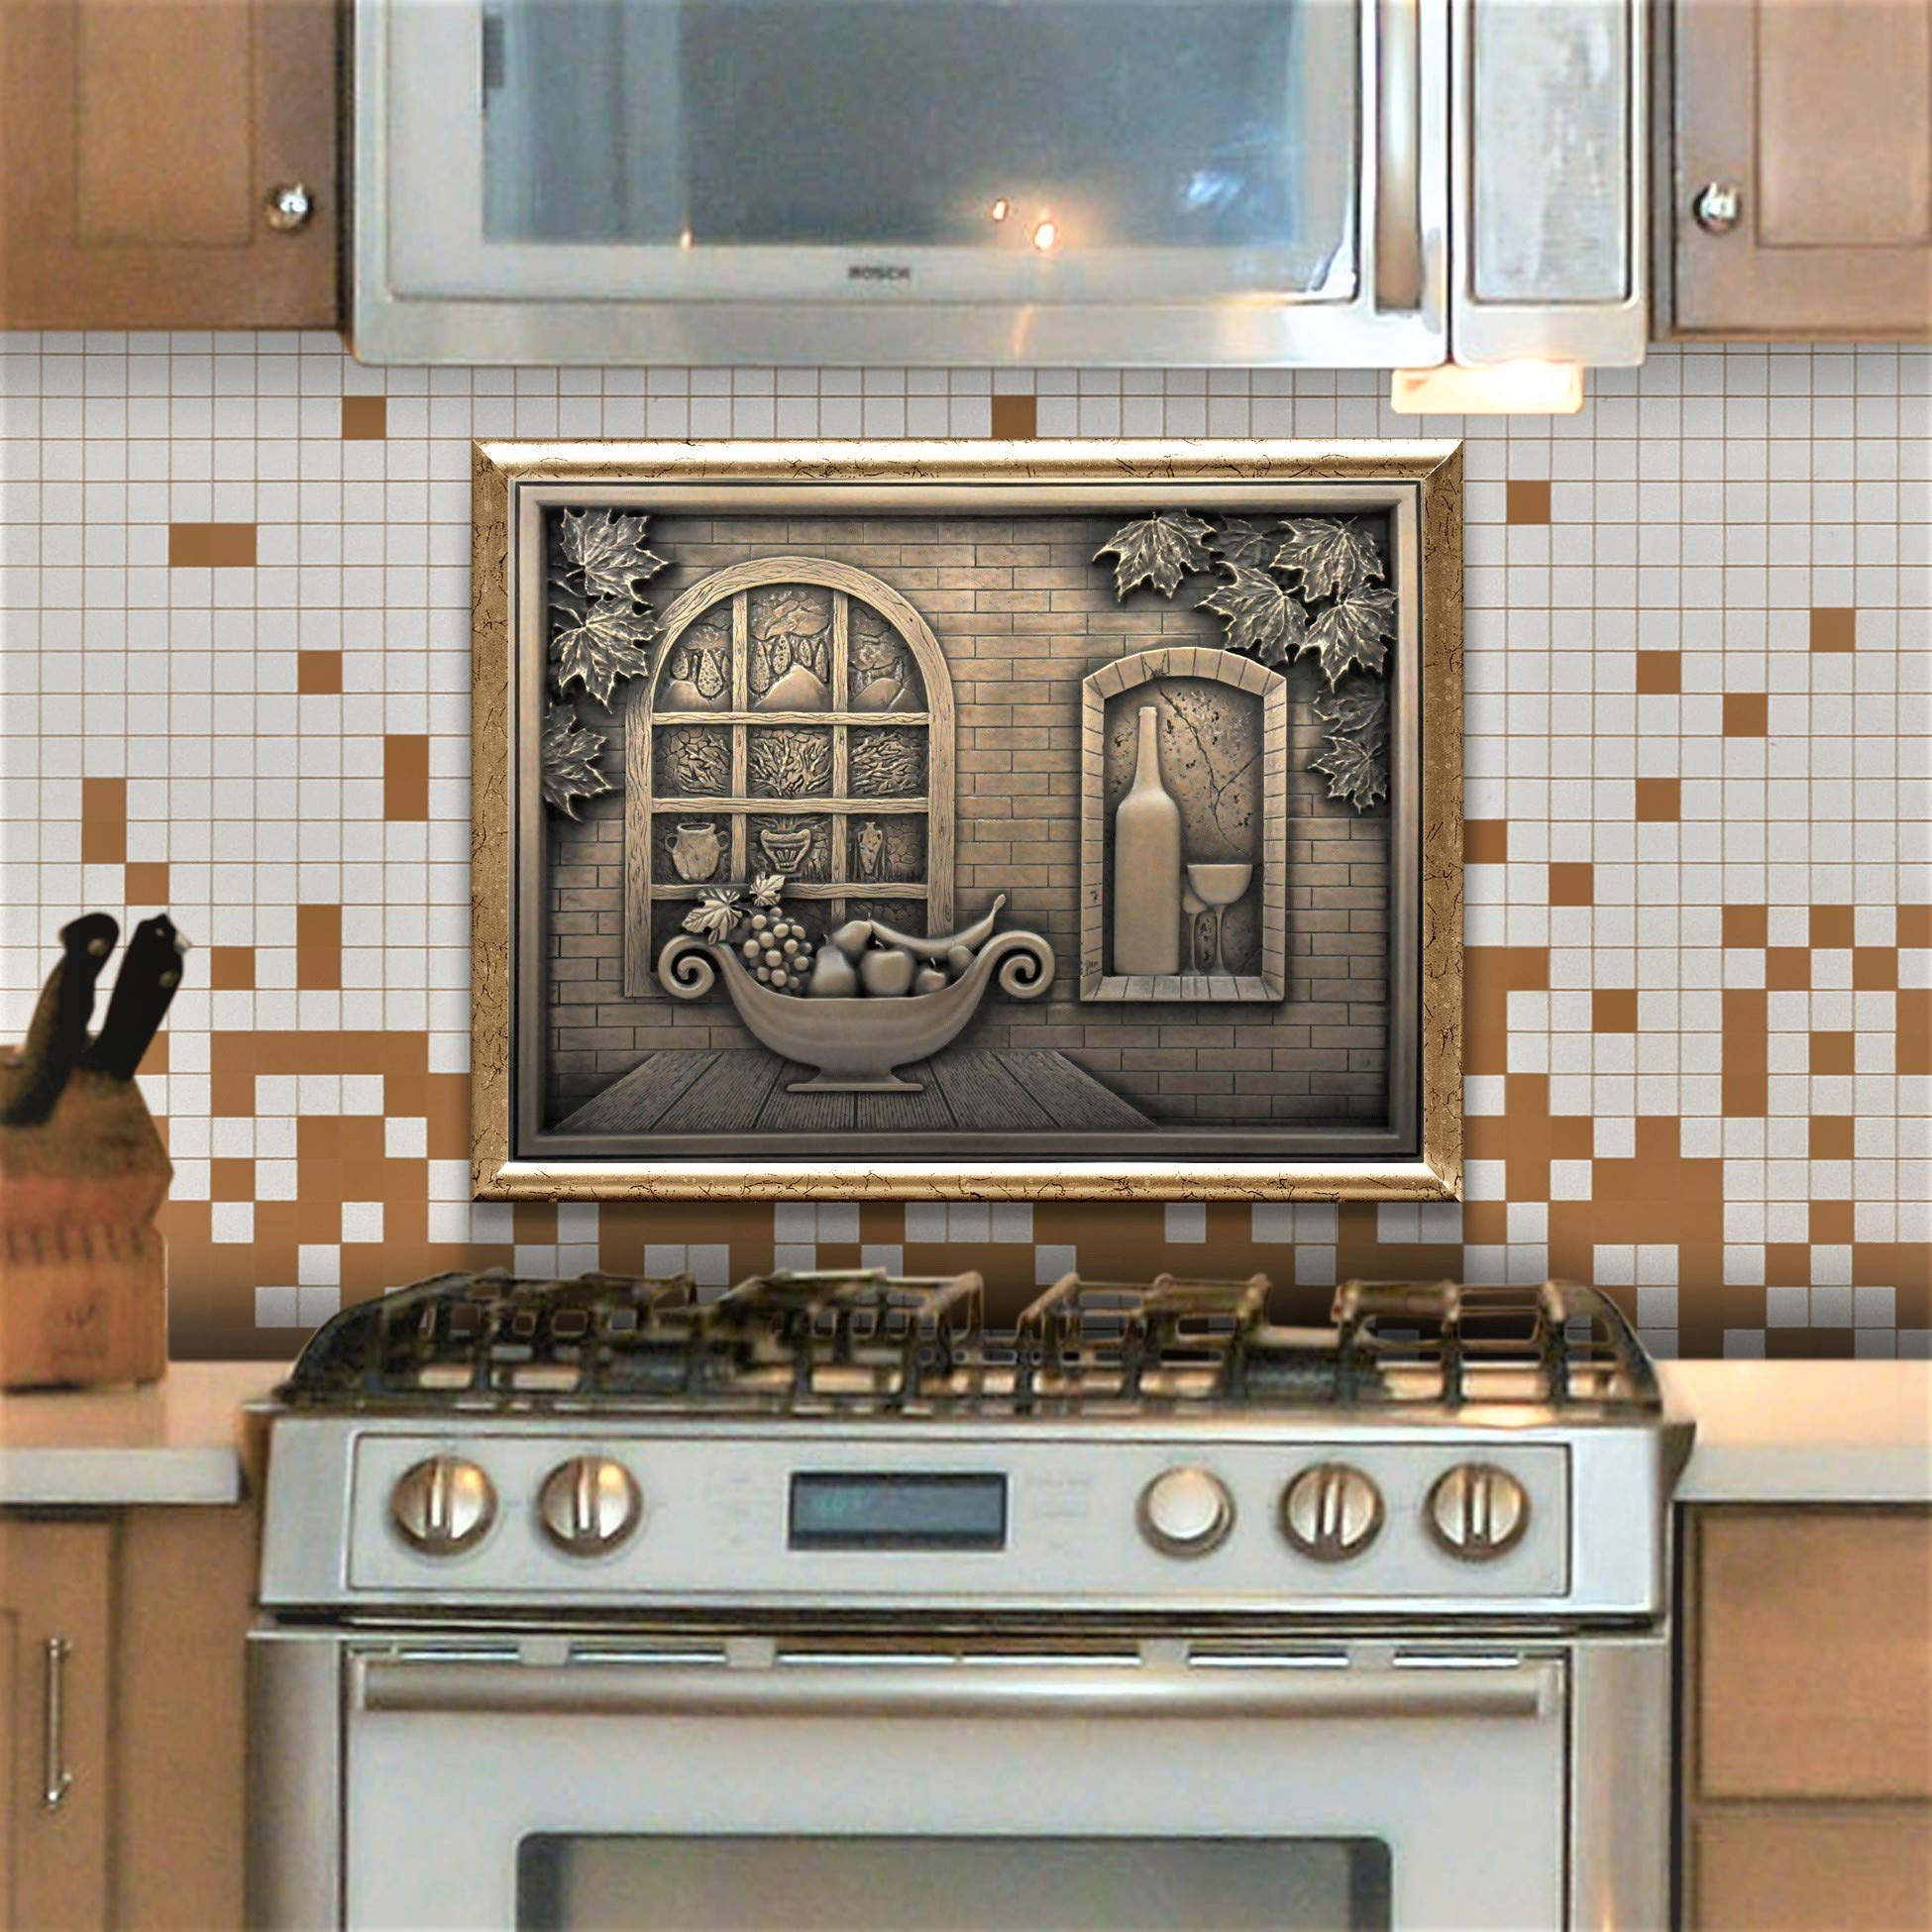 Fireplace Wall Accent Metal Resin Mural Plaque Tile Serenade Metal MURAL Wrought Iron Hand Made 18x24 Kitchen Backsplash Medallion or Bathroom